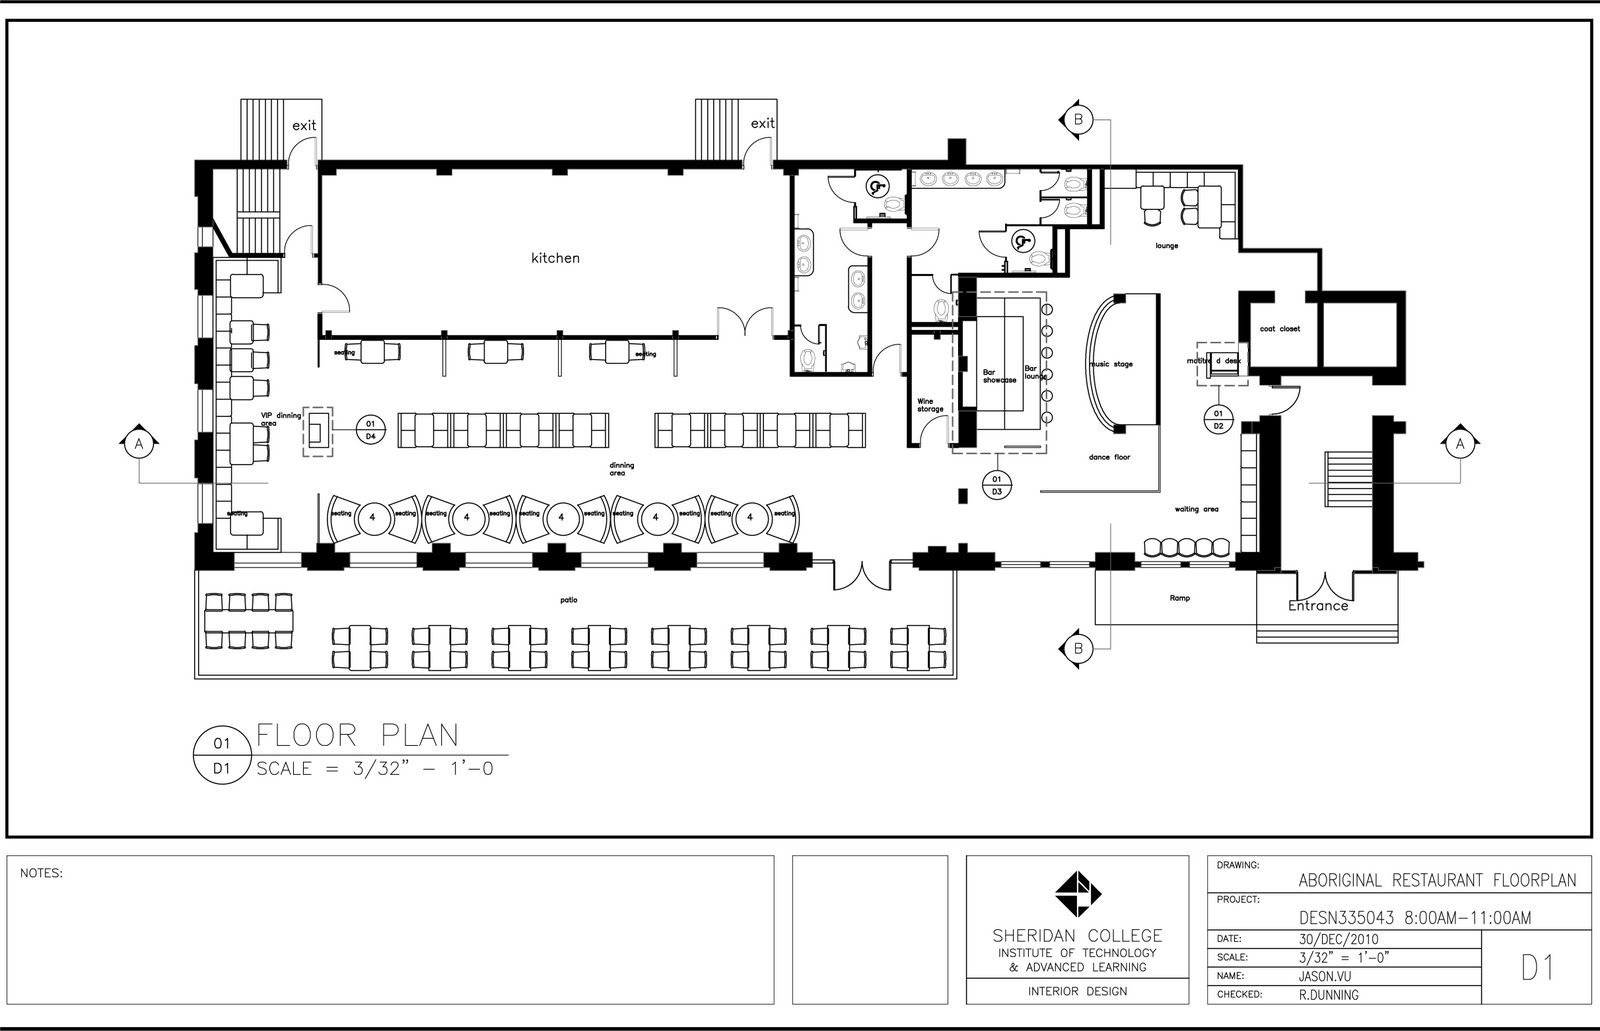 Restaurant Floor Plans Opera House And The Great Outdoors